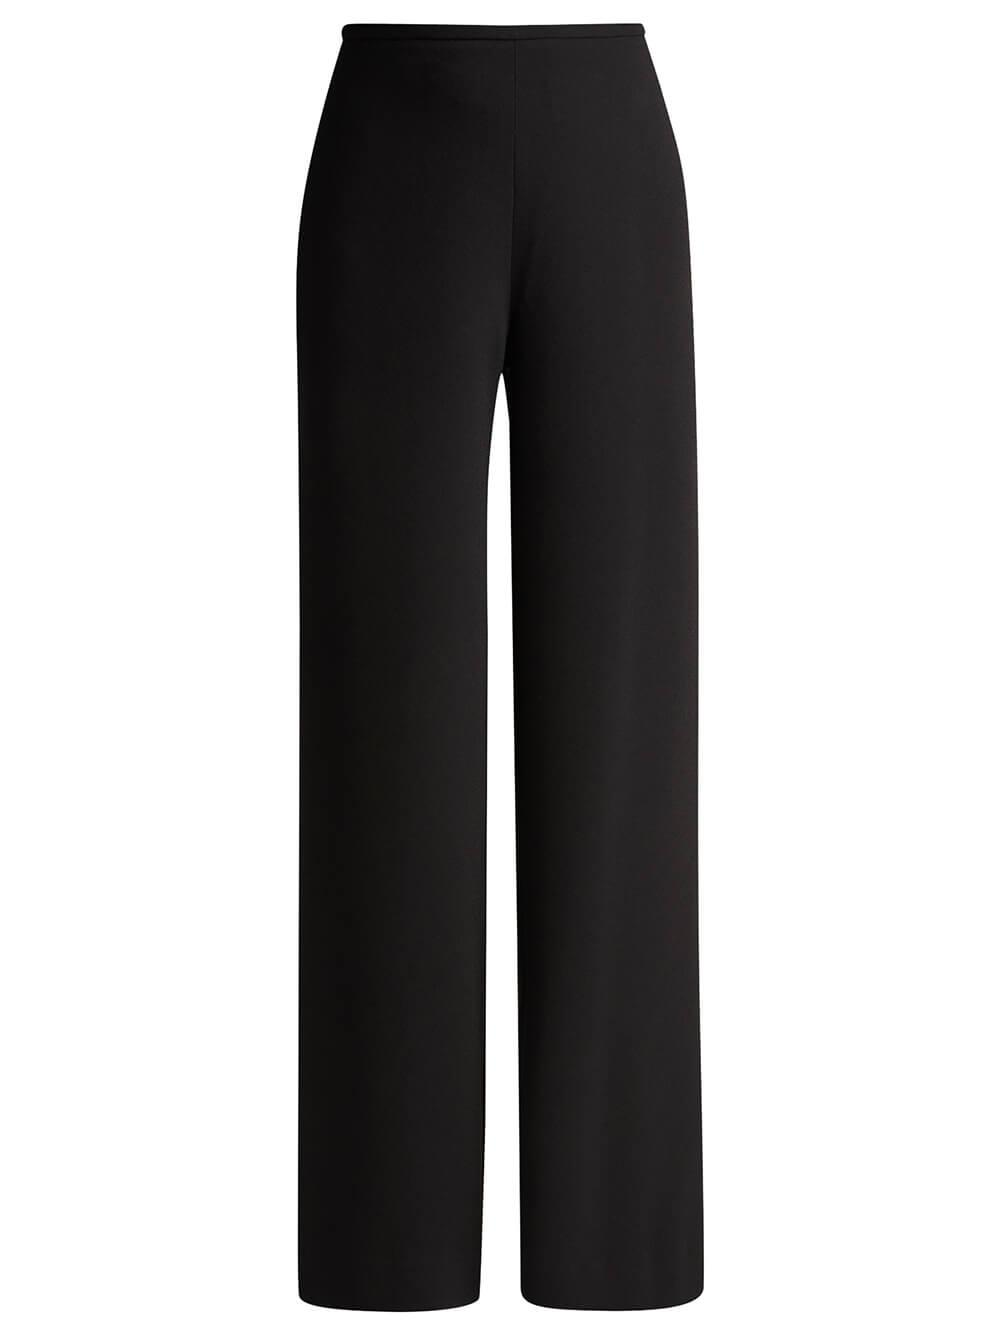 Crepe Evening Pant